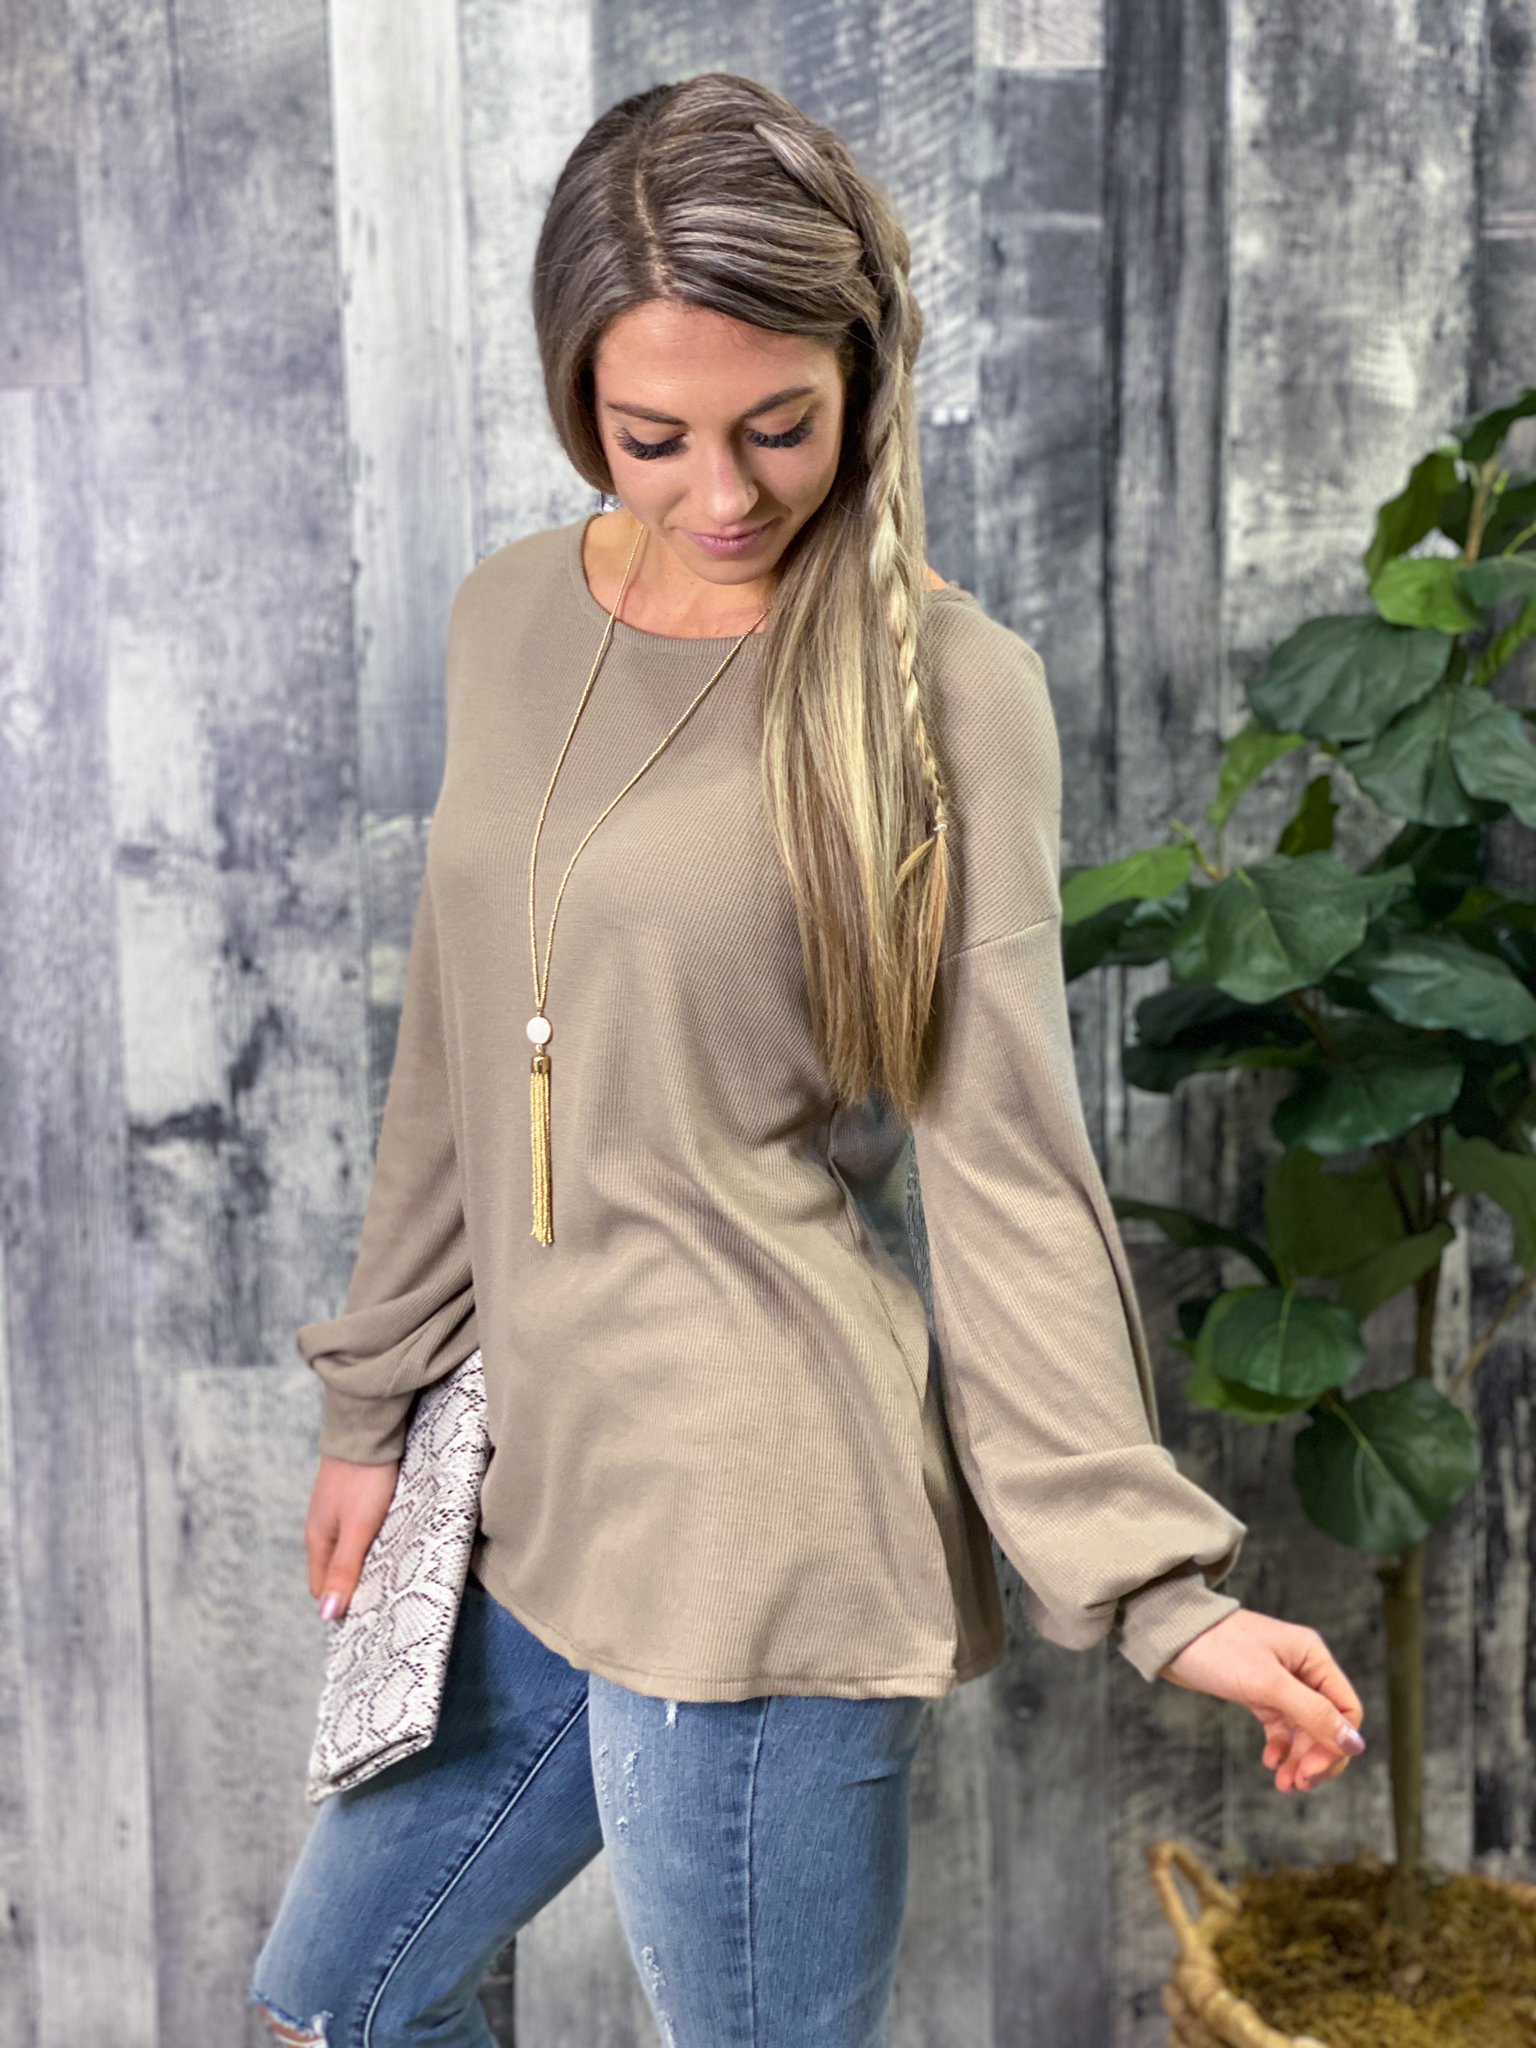 Criss Cross Back Long Sleeve Top - Taupe